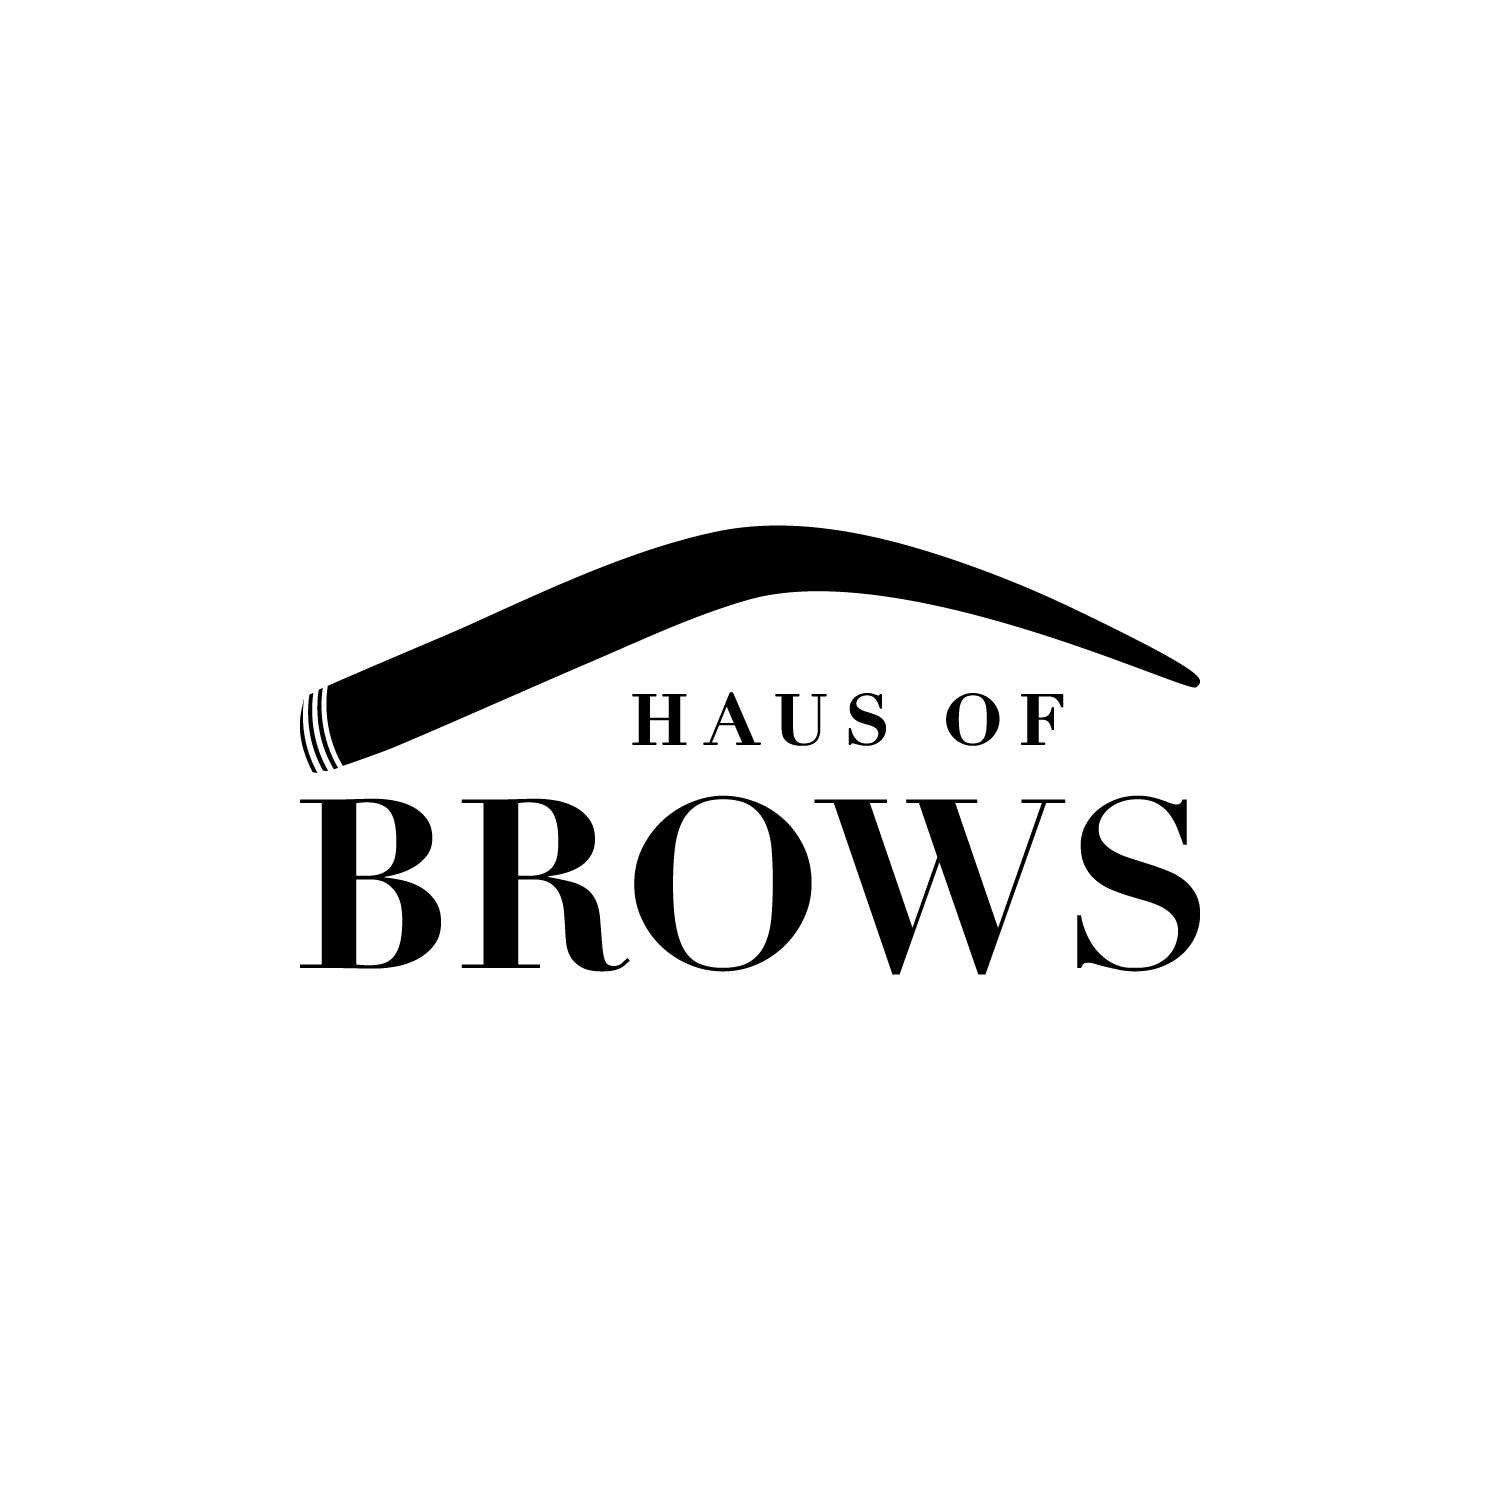 Logo Design for Haus of Brows